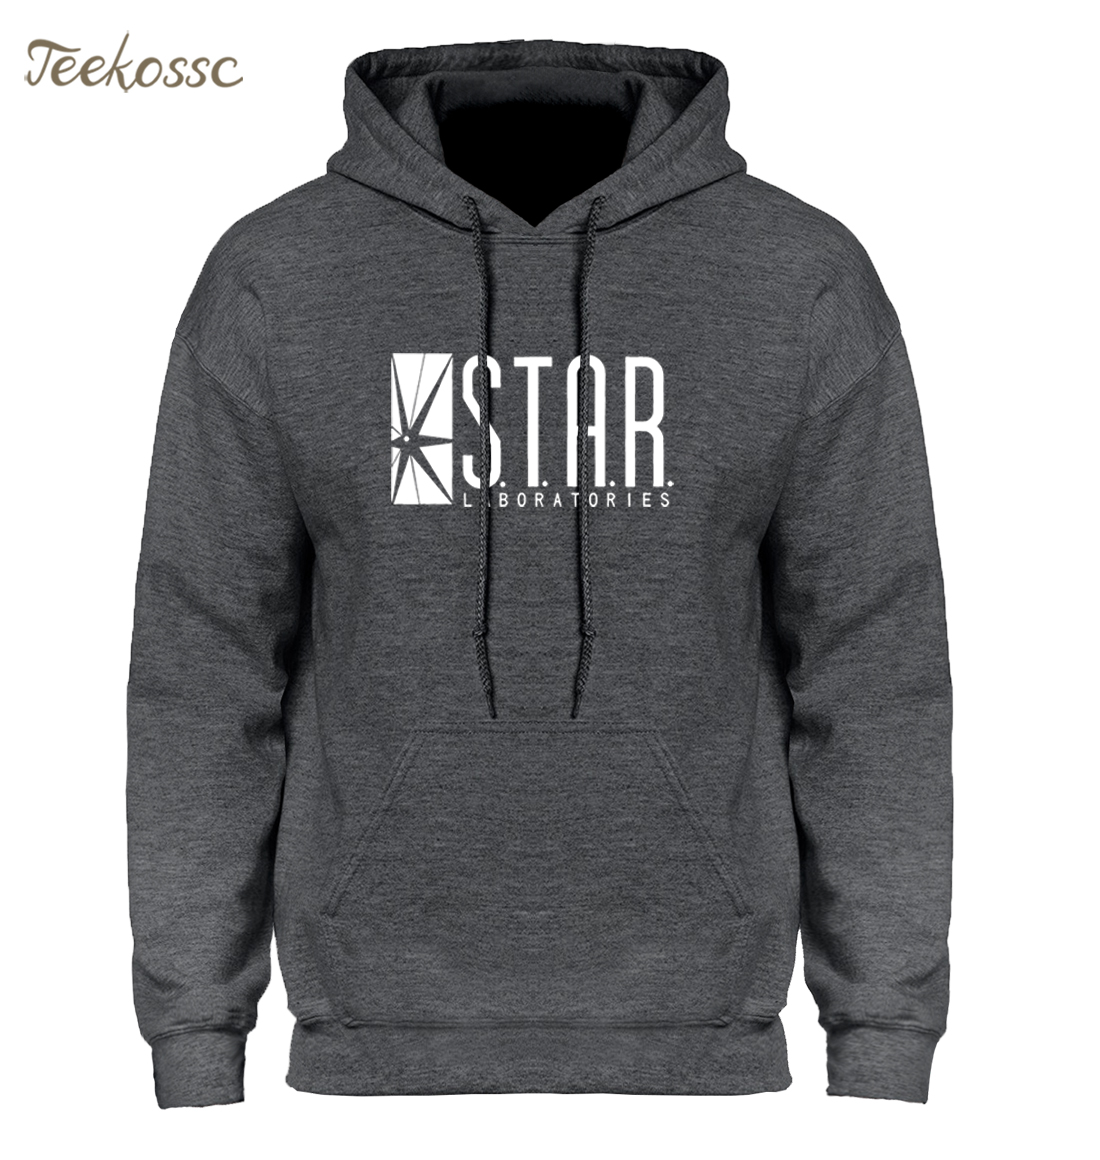 Superman Series STAR S.T.A.R.labs Jumper The Flash Gotham City Comic Books Black Hoodie Hoodies Sweatshirt Men 2018 Hooded Hoody